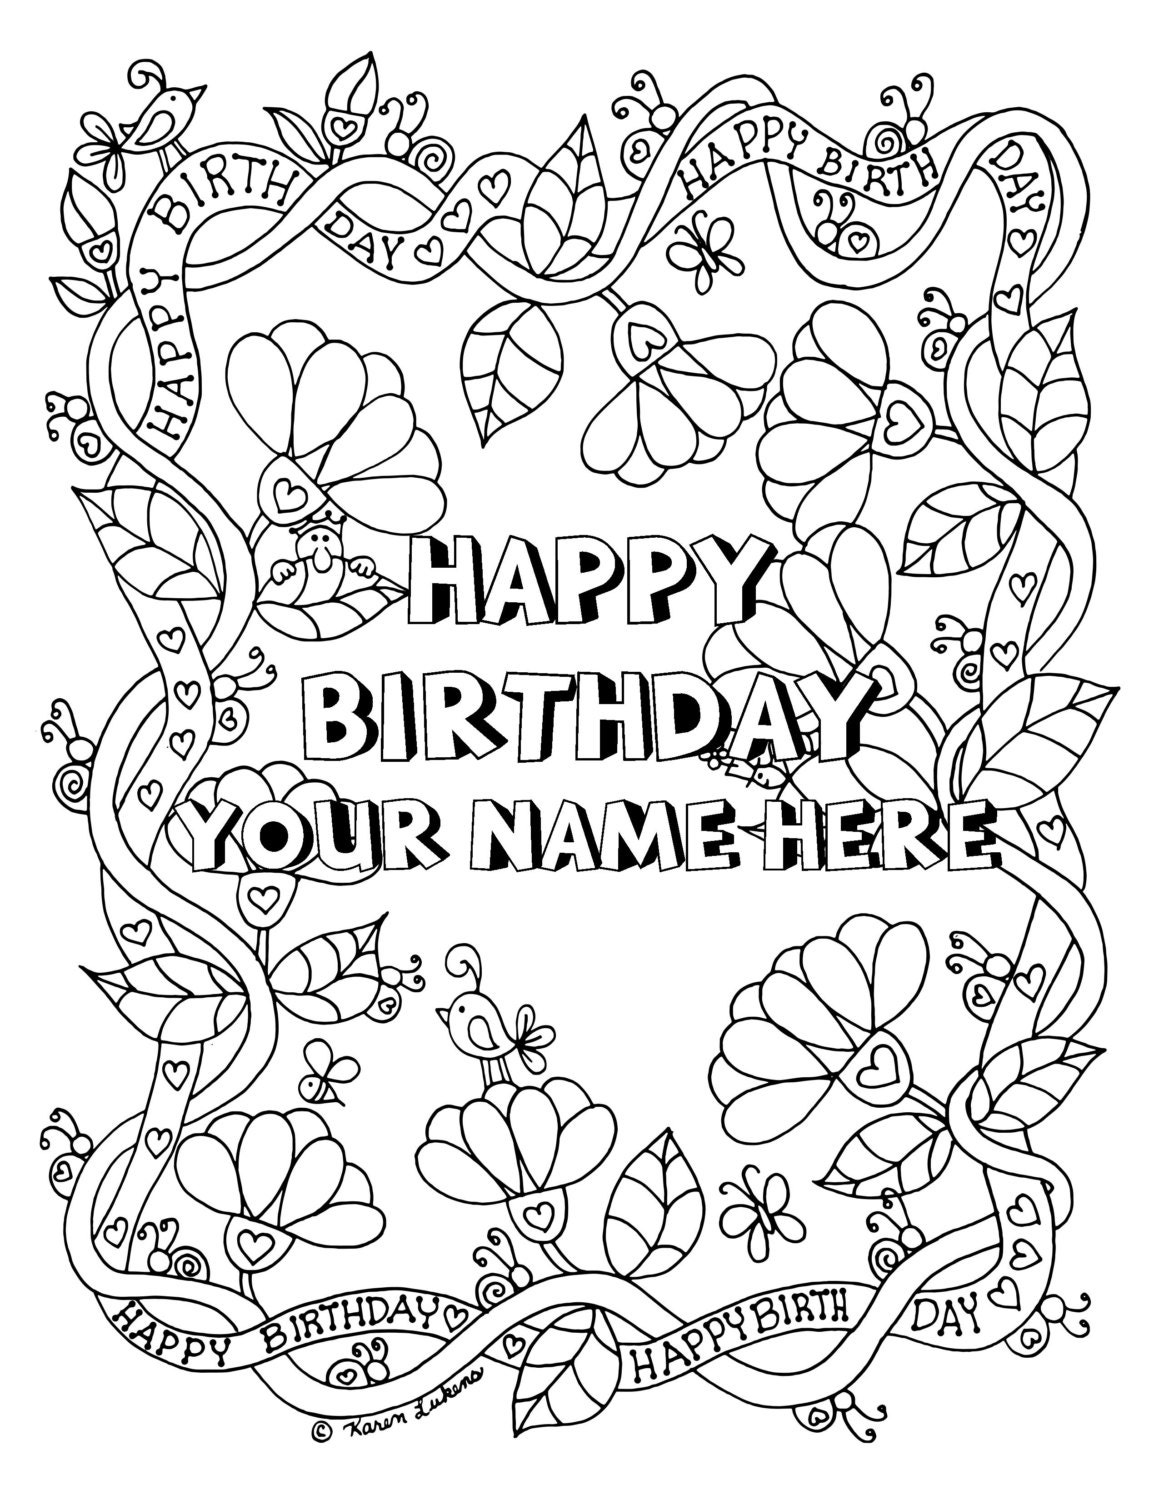 adult cute customized coloring pages images top il fullxfull 1092422225 d48v jpg happy birthday customized with